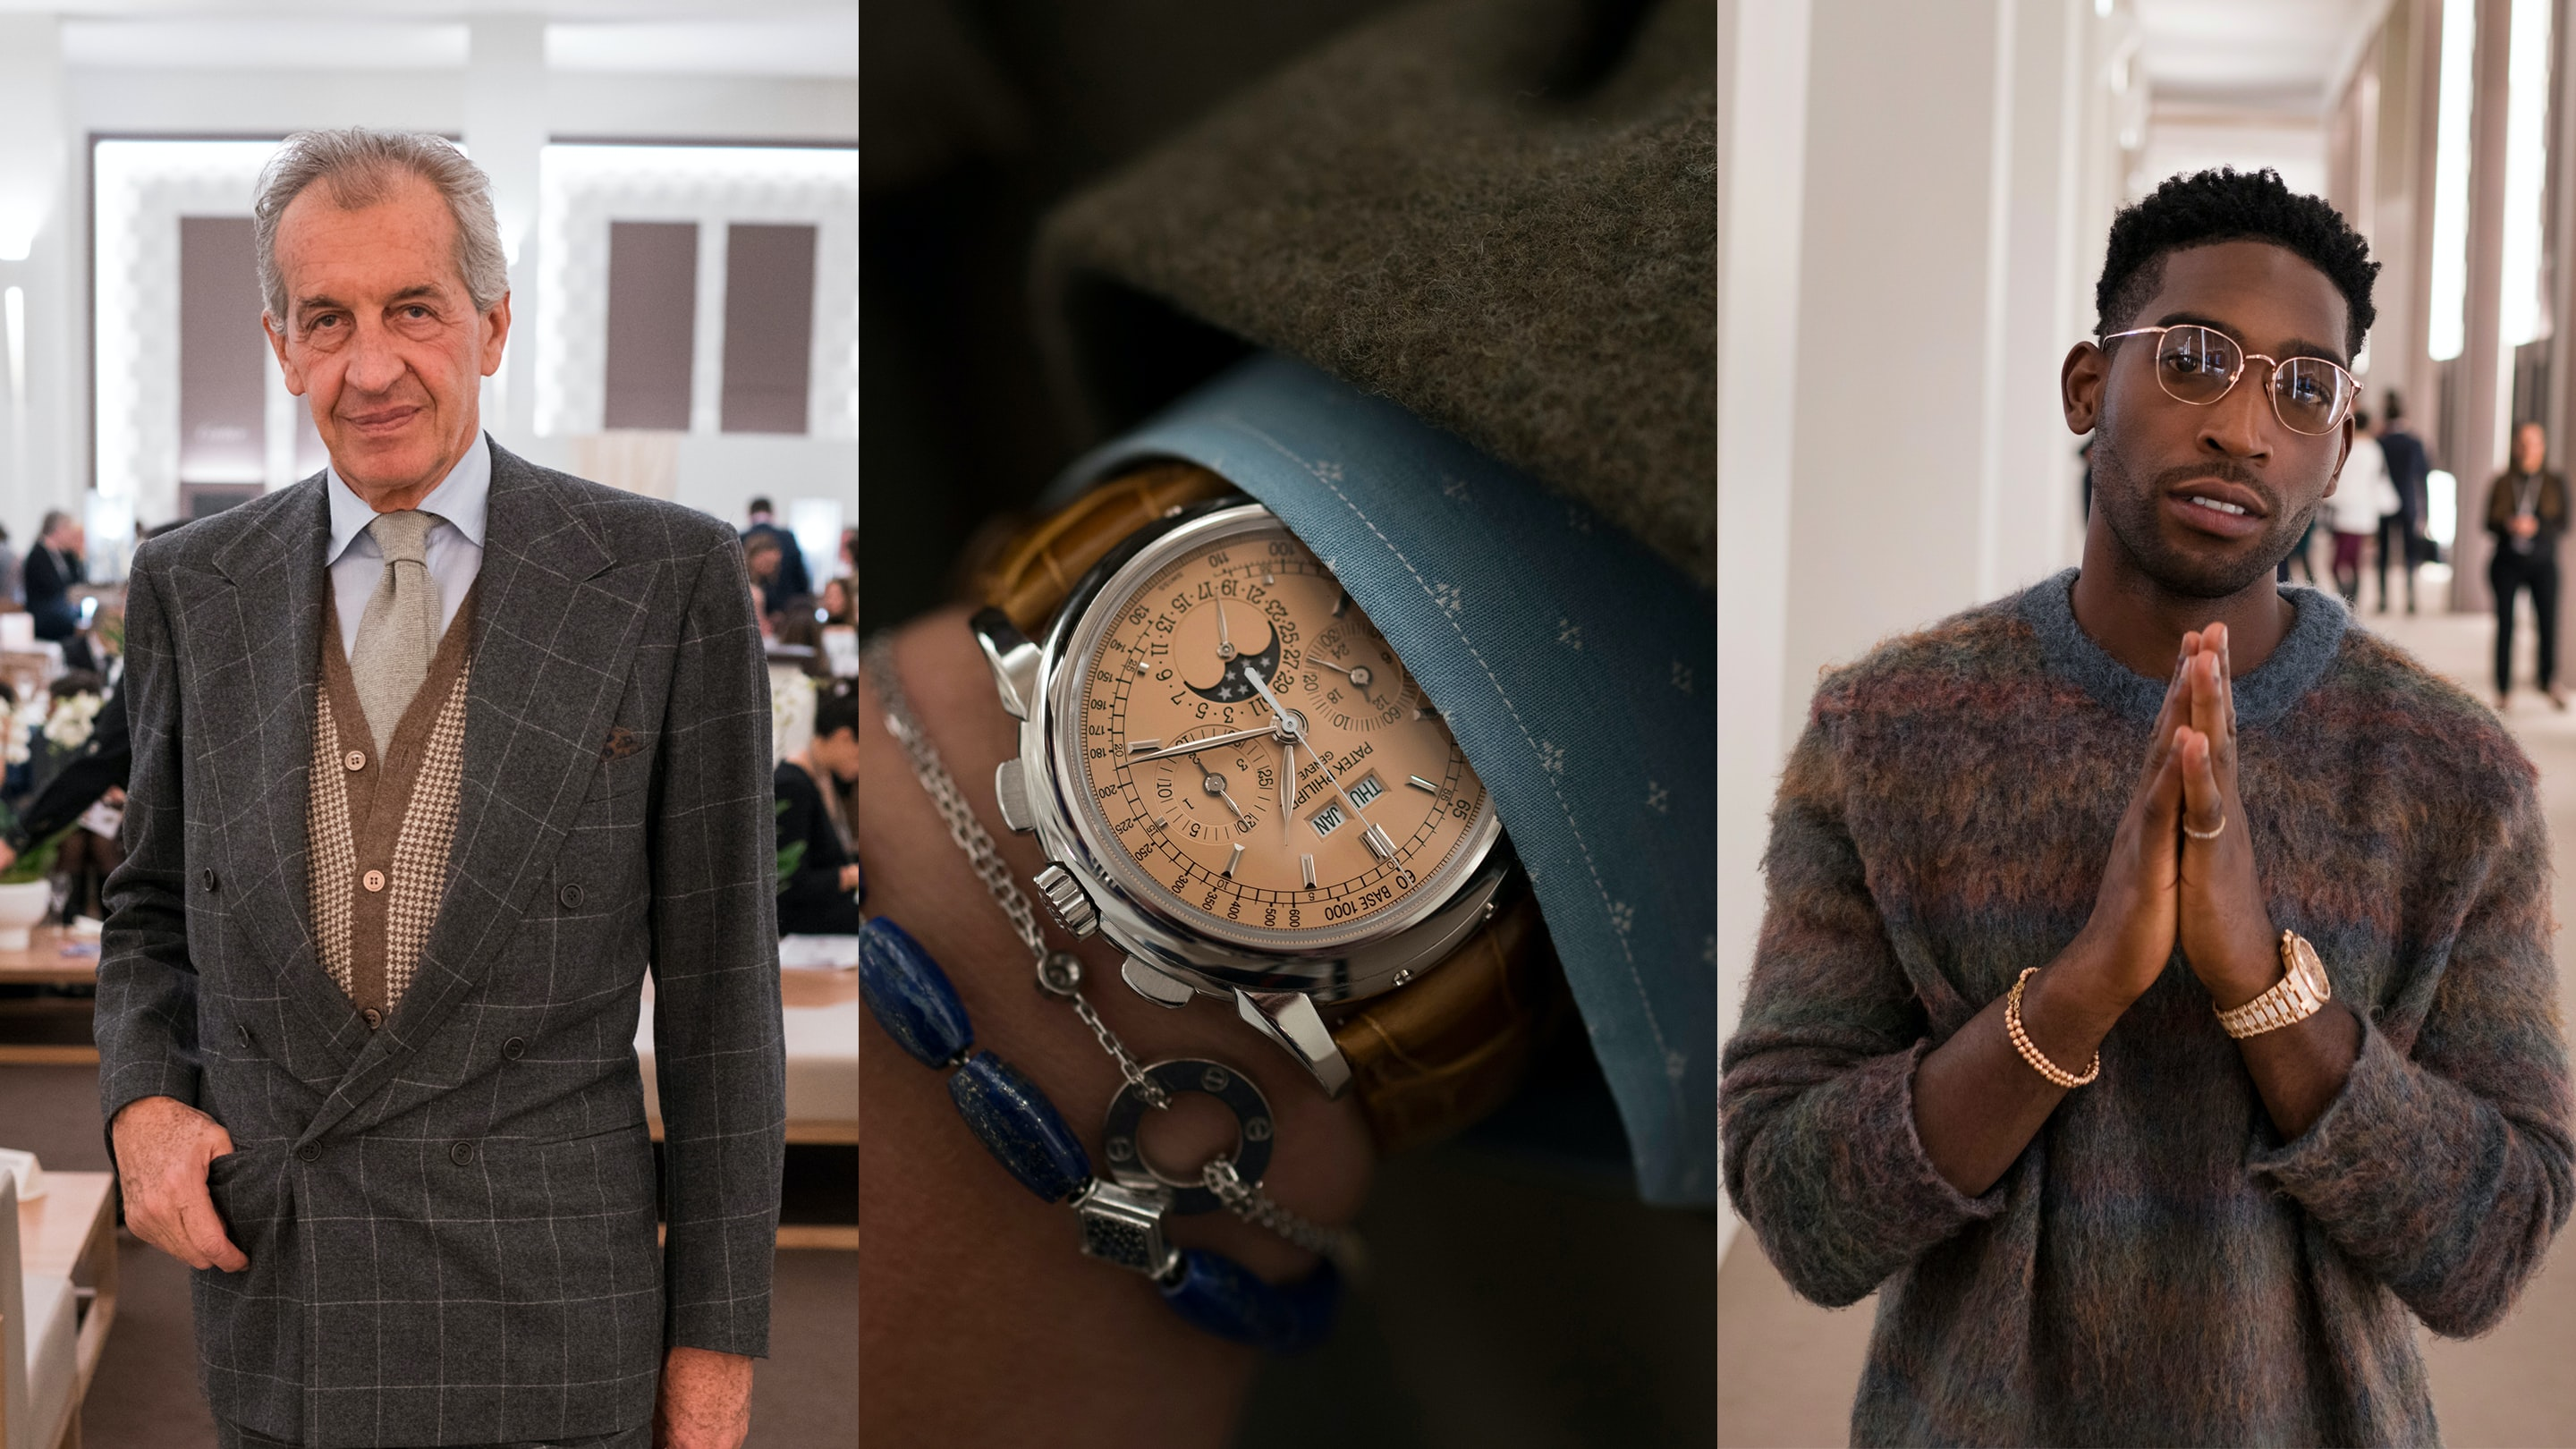 Photo Report: The Fashion And Watches Of SIHH 2018